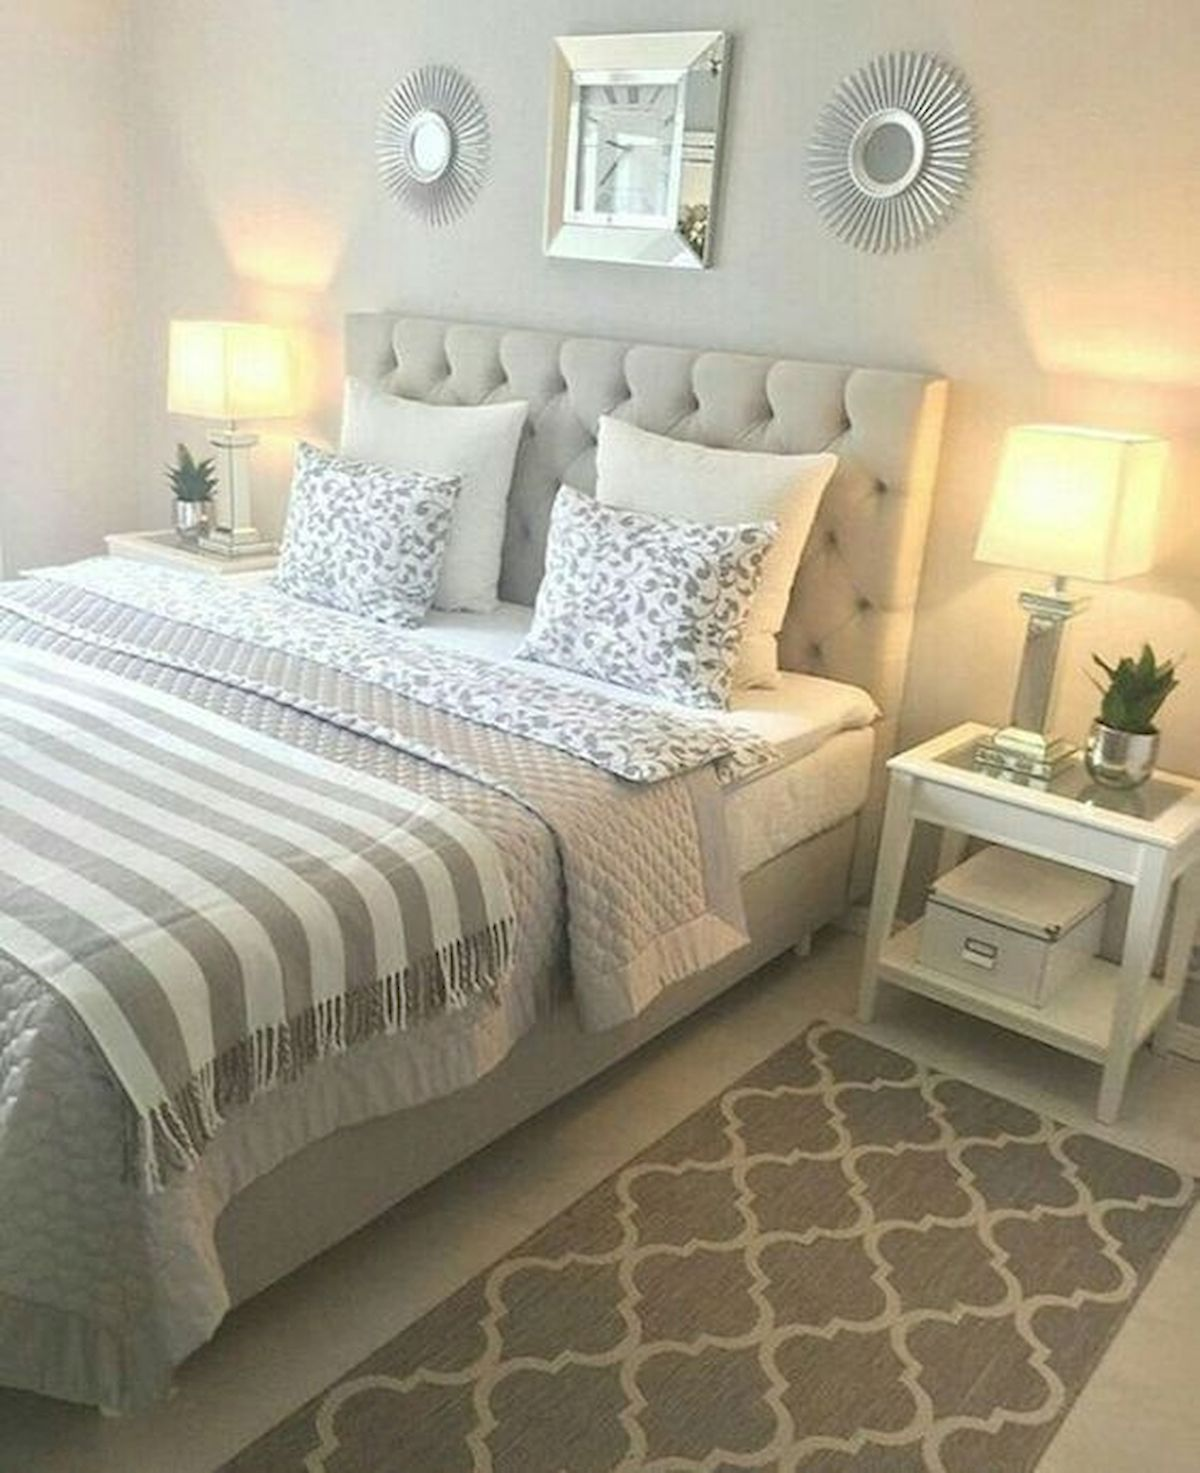 40 Incredible Modern Bedroom Design Ideas That Will Be Relax Place (38)